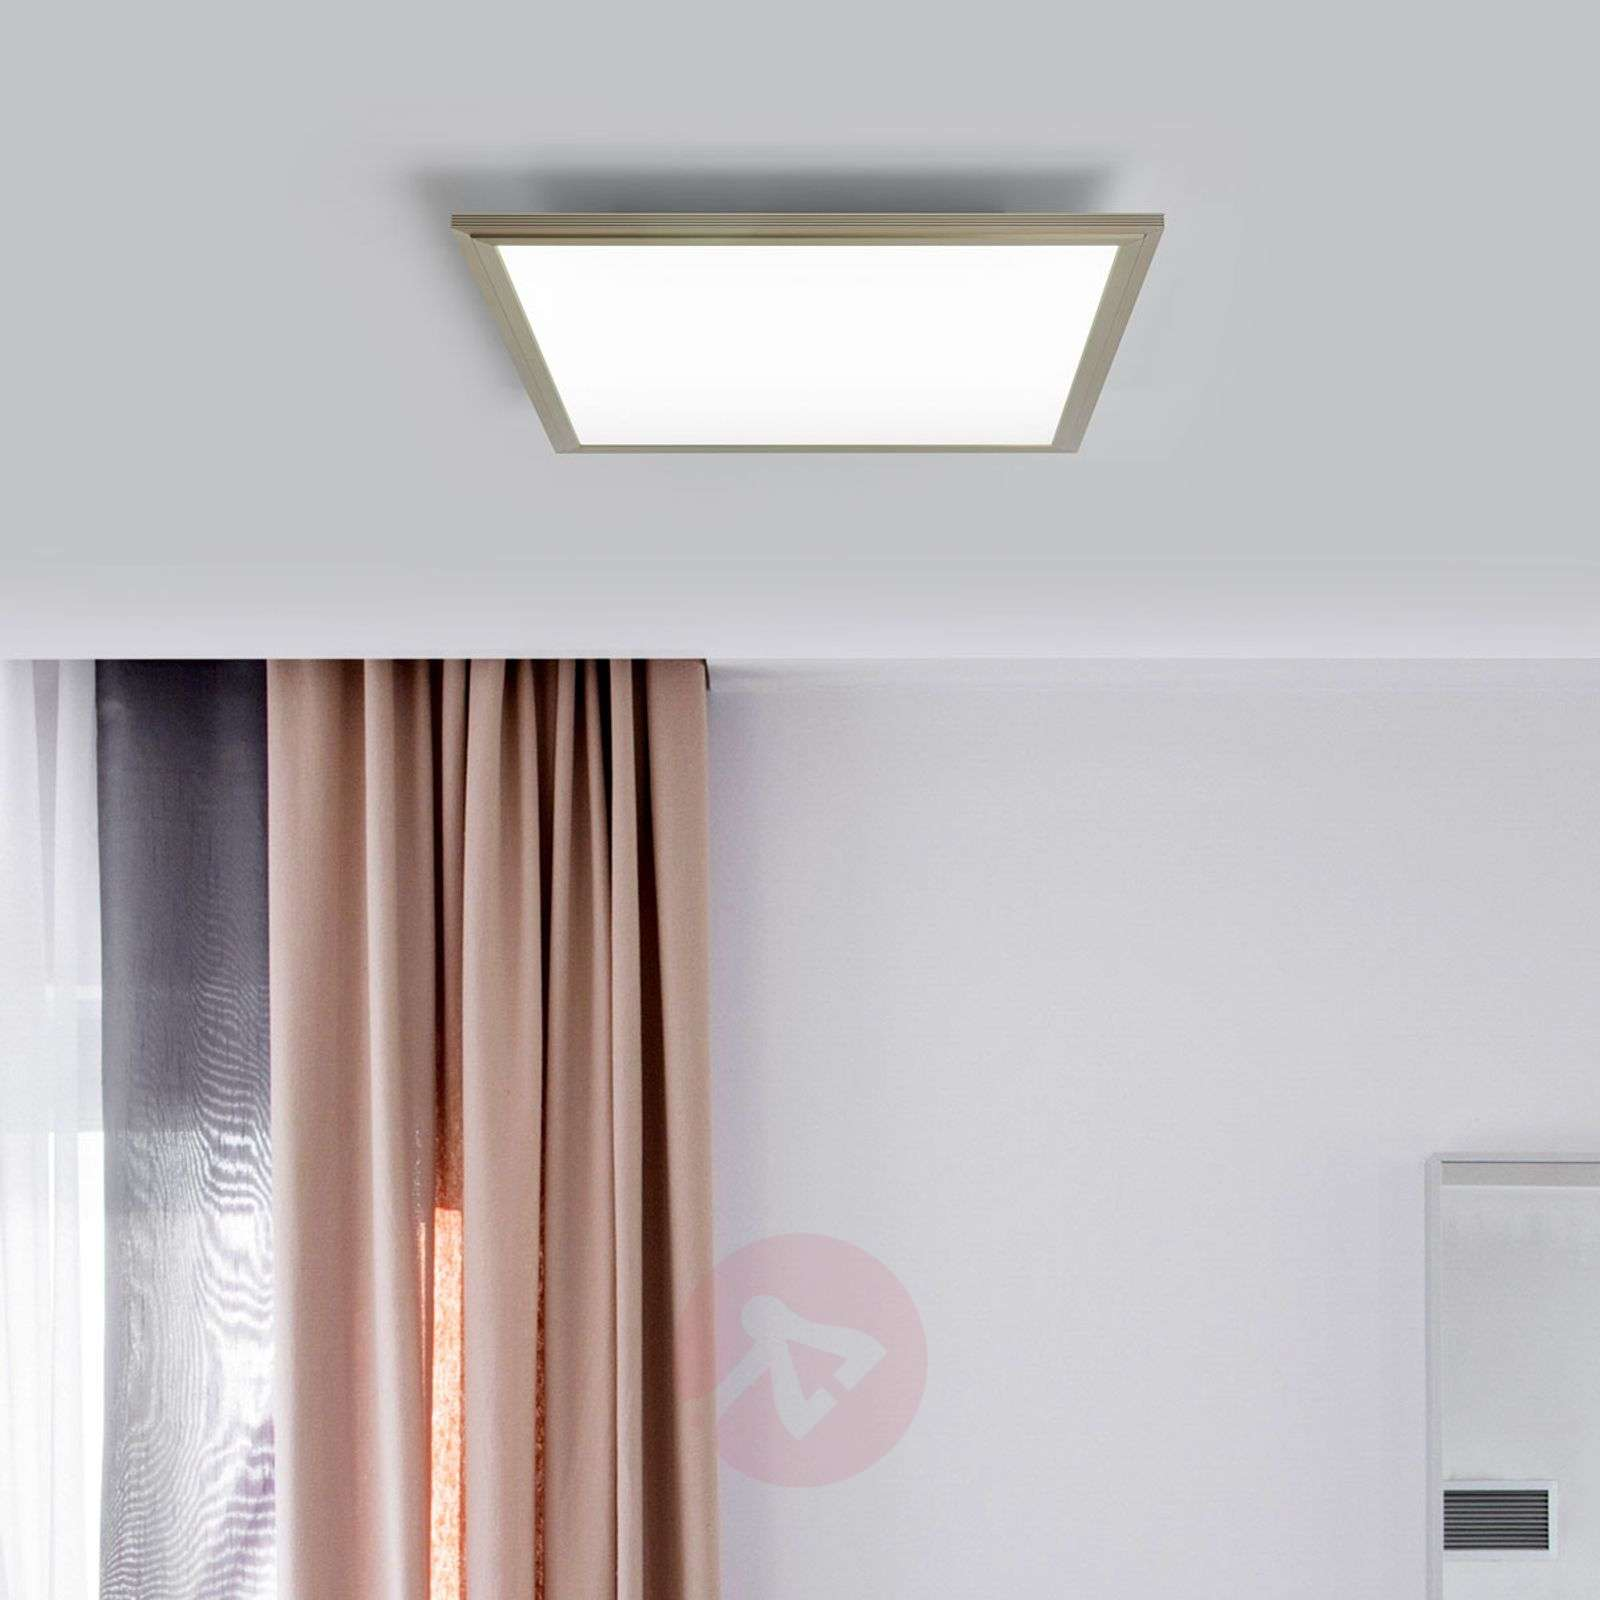 Corinna LED ceiling light 2700 6200K, 42 x 42 cm-1558120-04